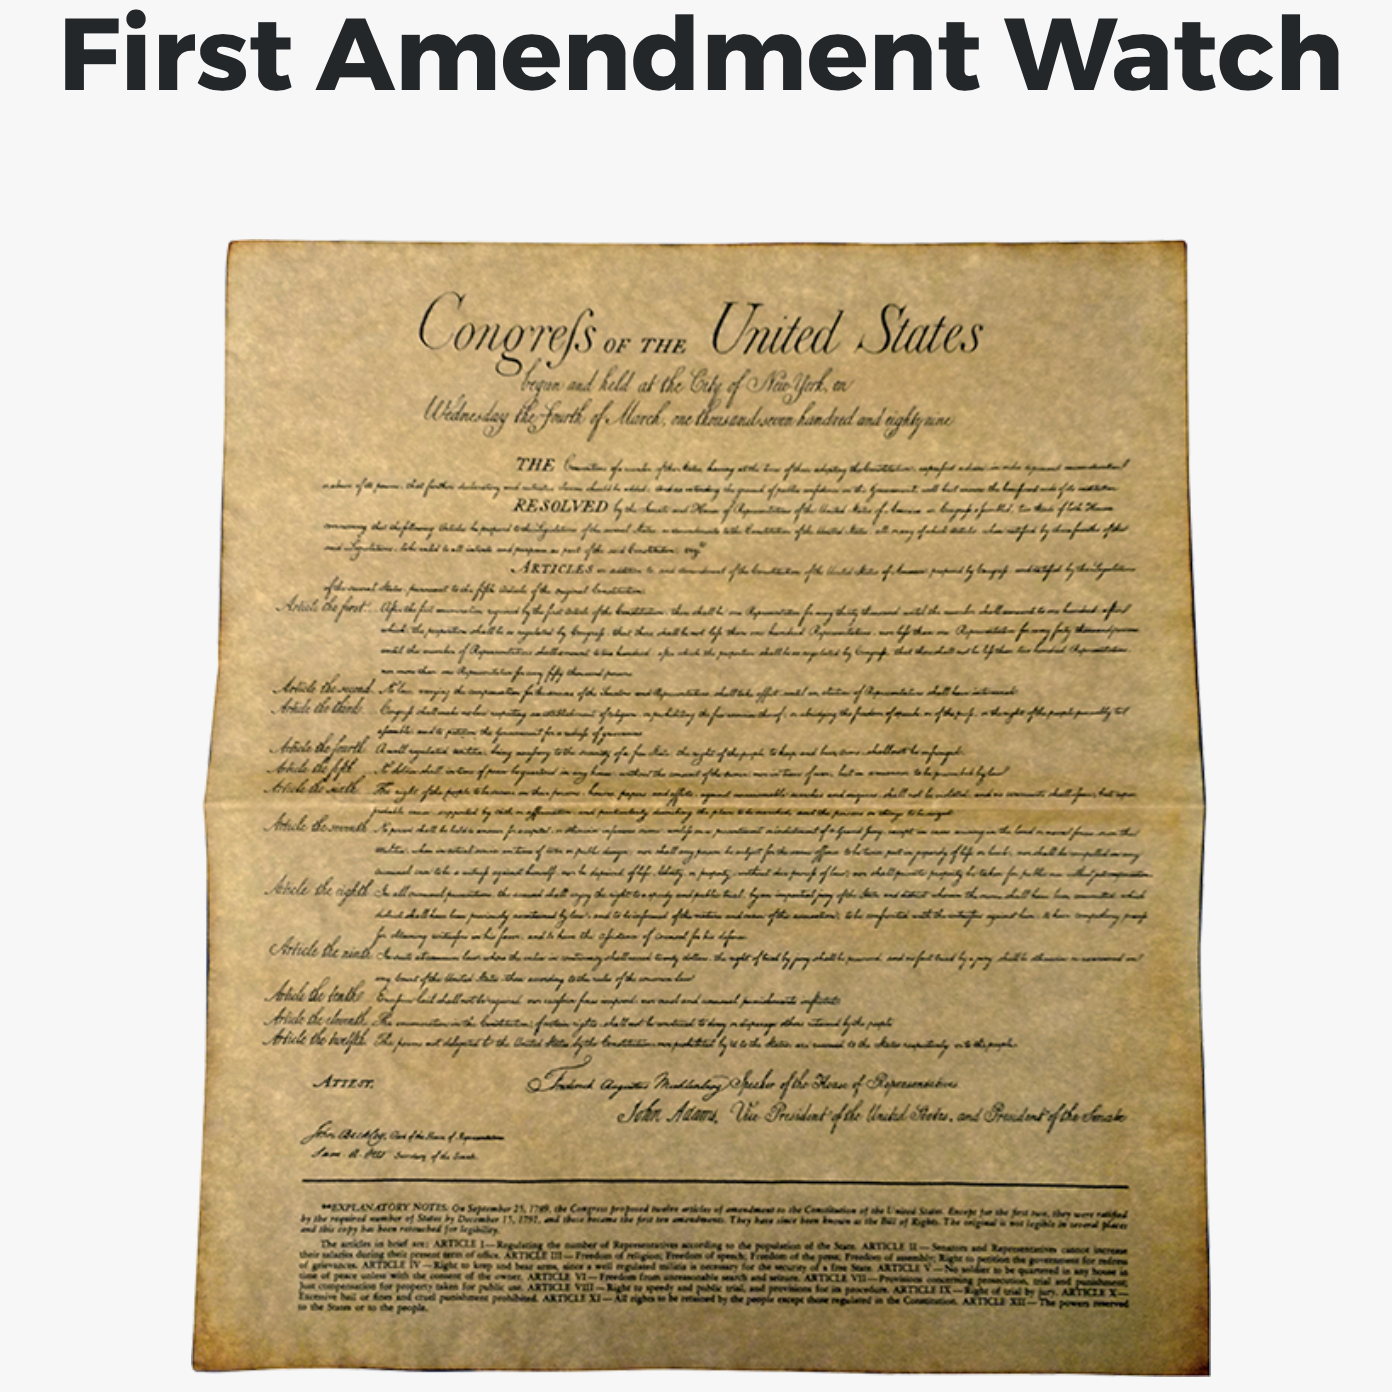 First Amendment Watch